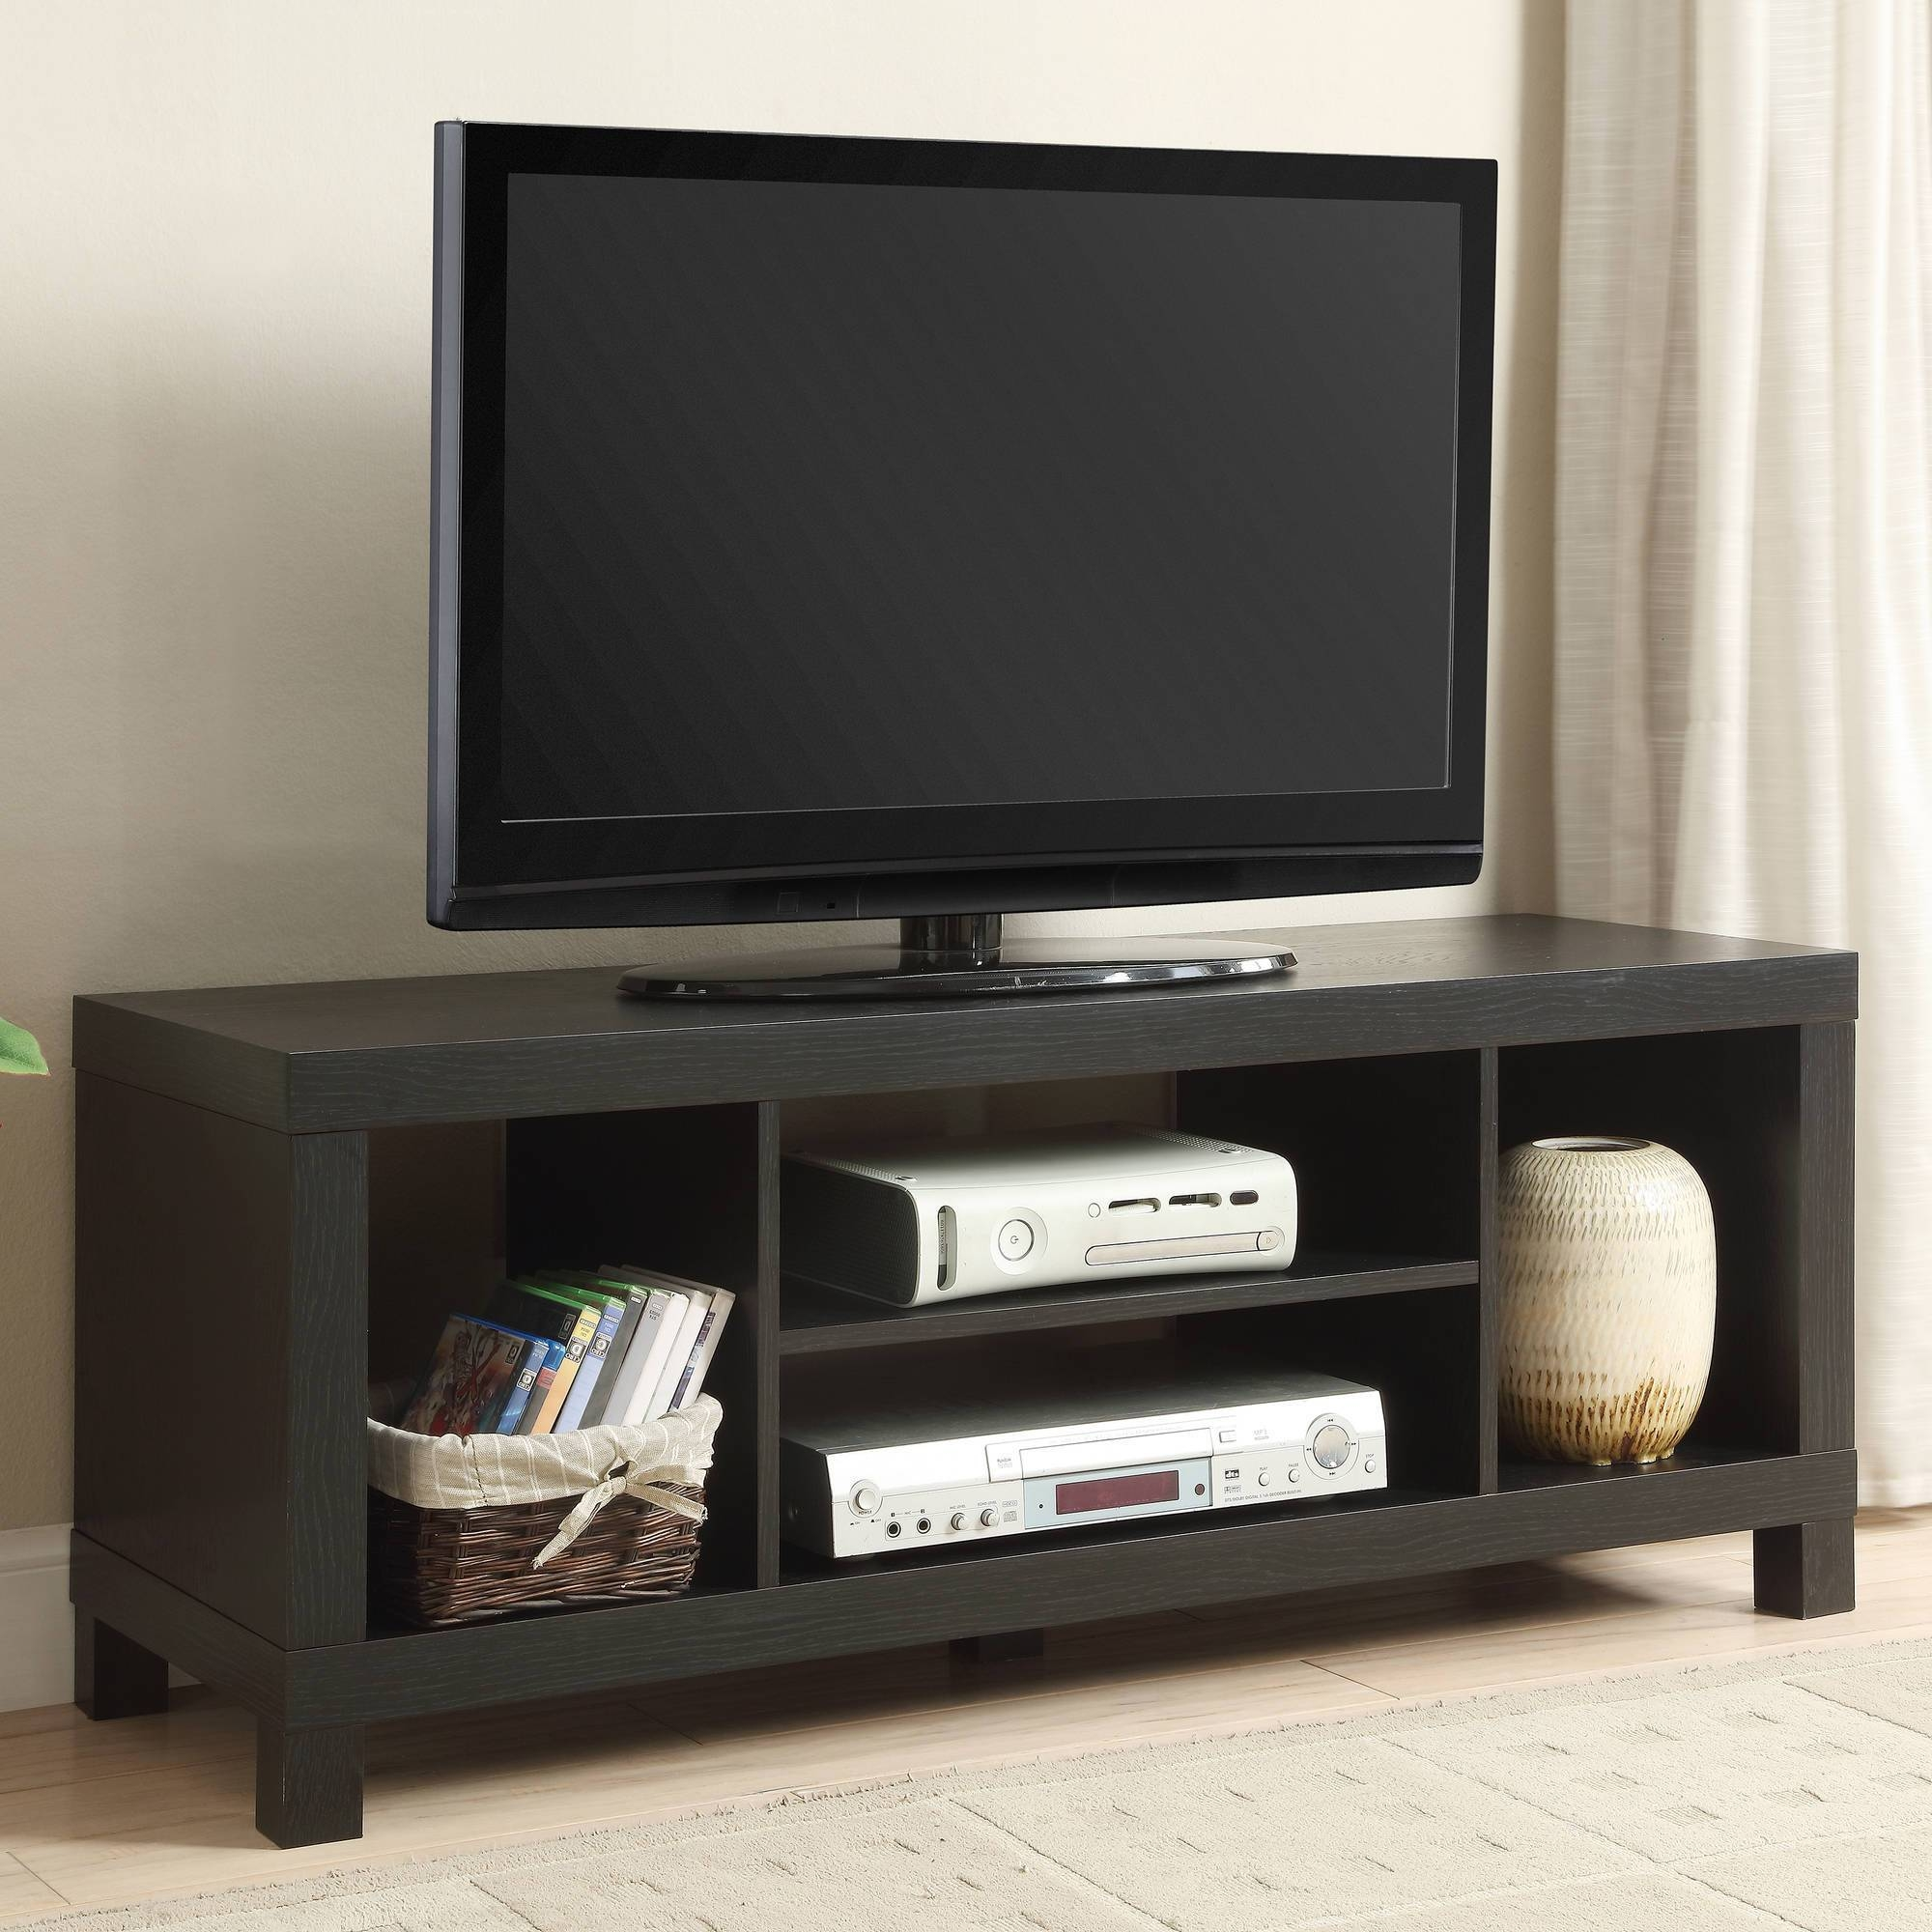 15 Best Ideas of Tv Stands for 43 Inch Tv